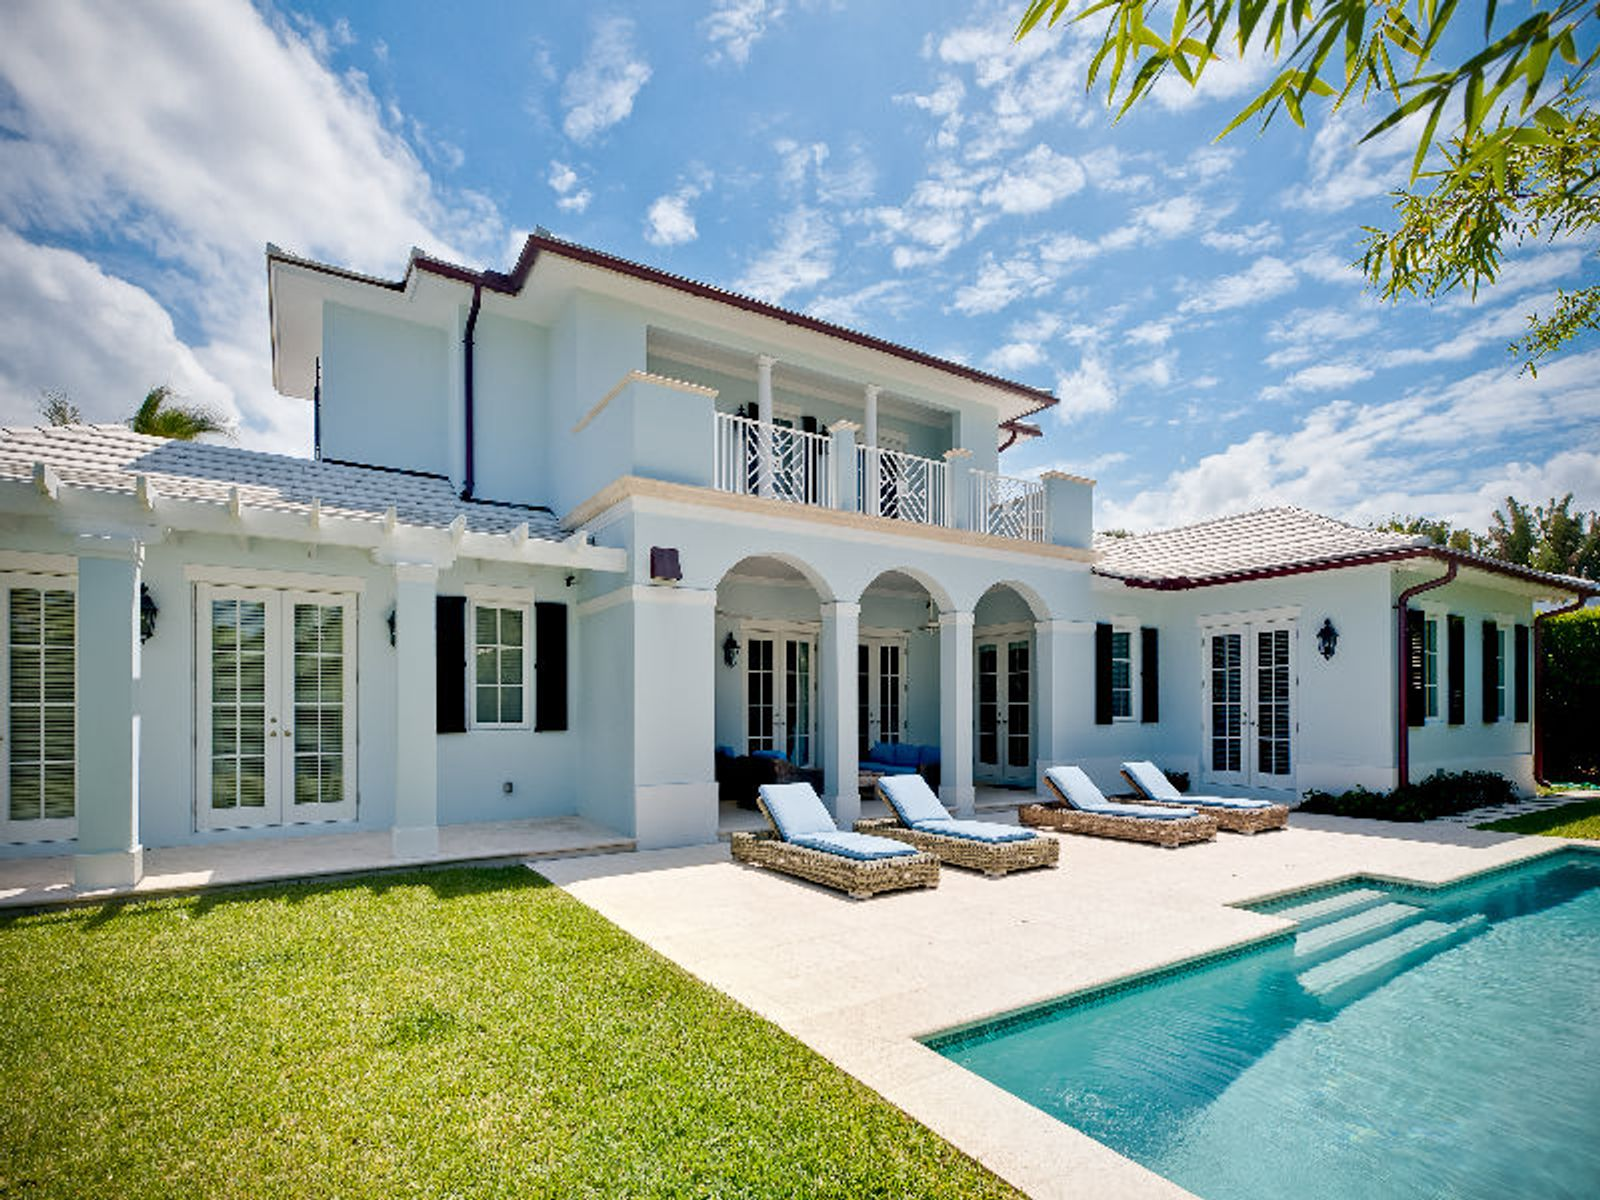 New West Indies Home, West Palm Beach FL Single Family Home - Palm Beach Real Estate